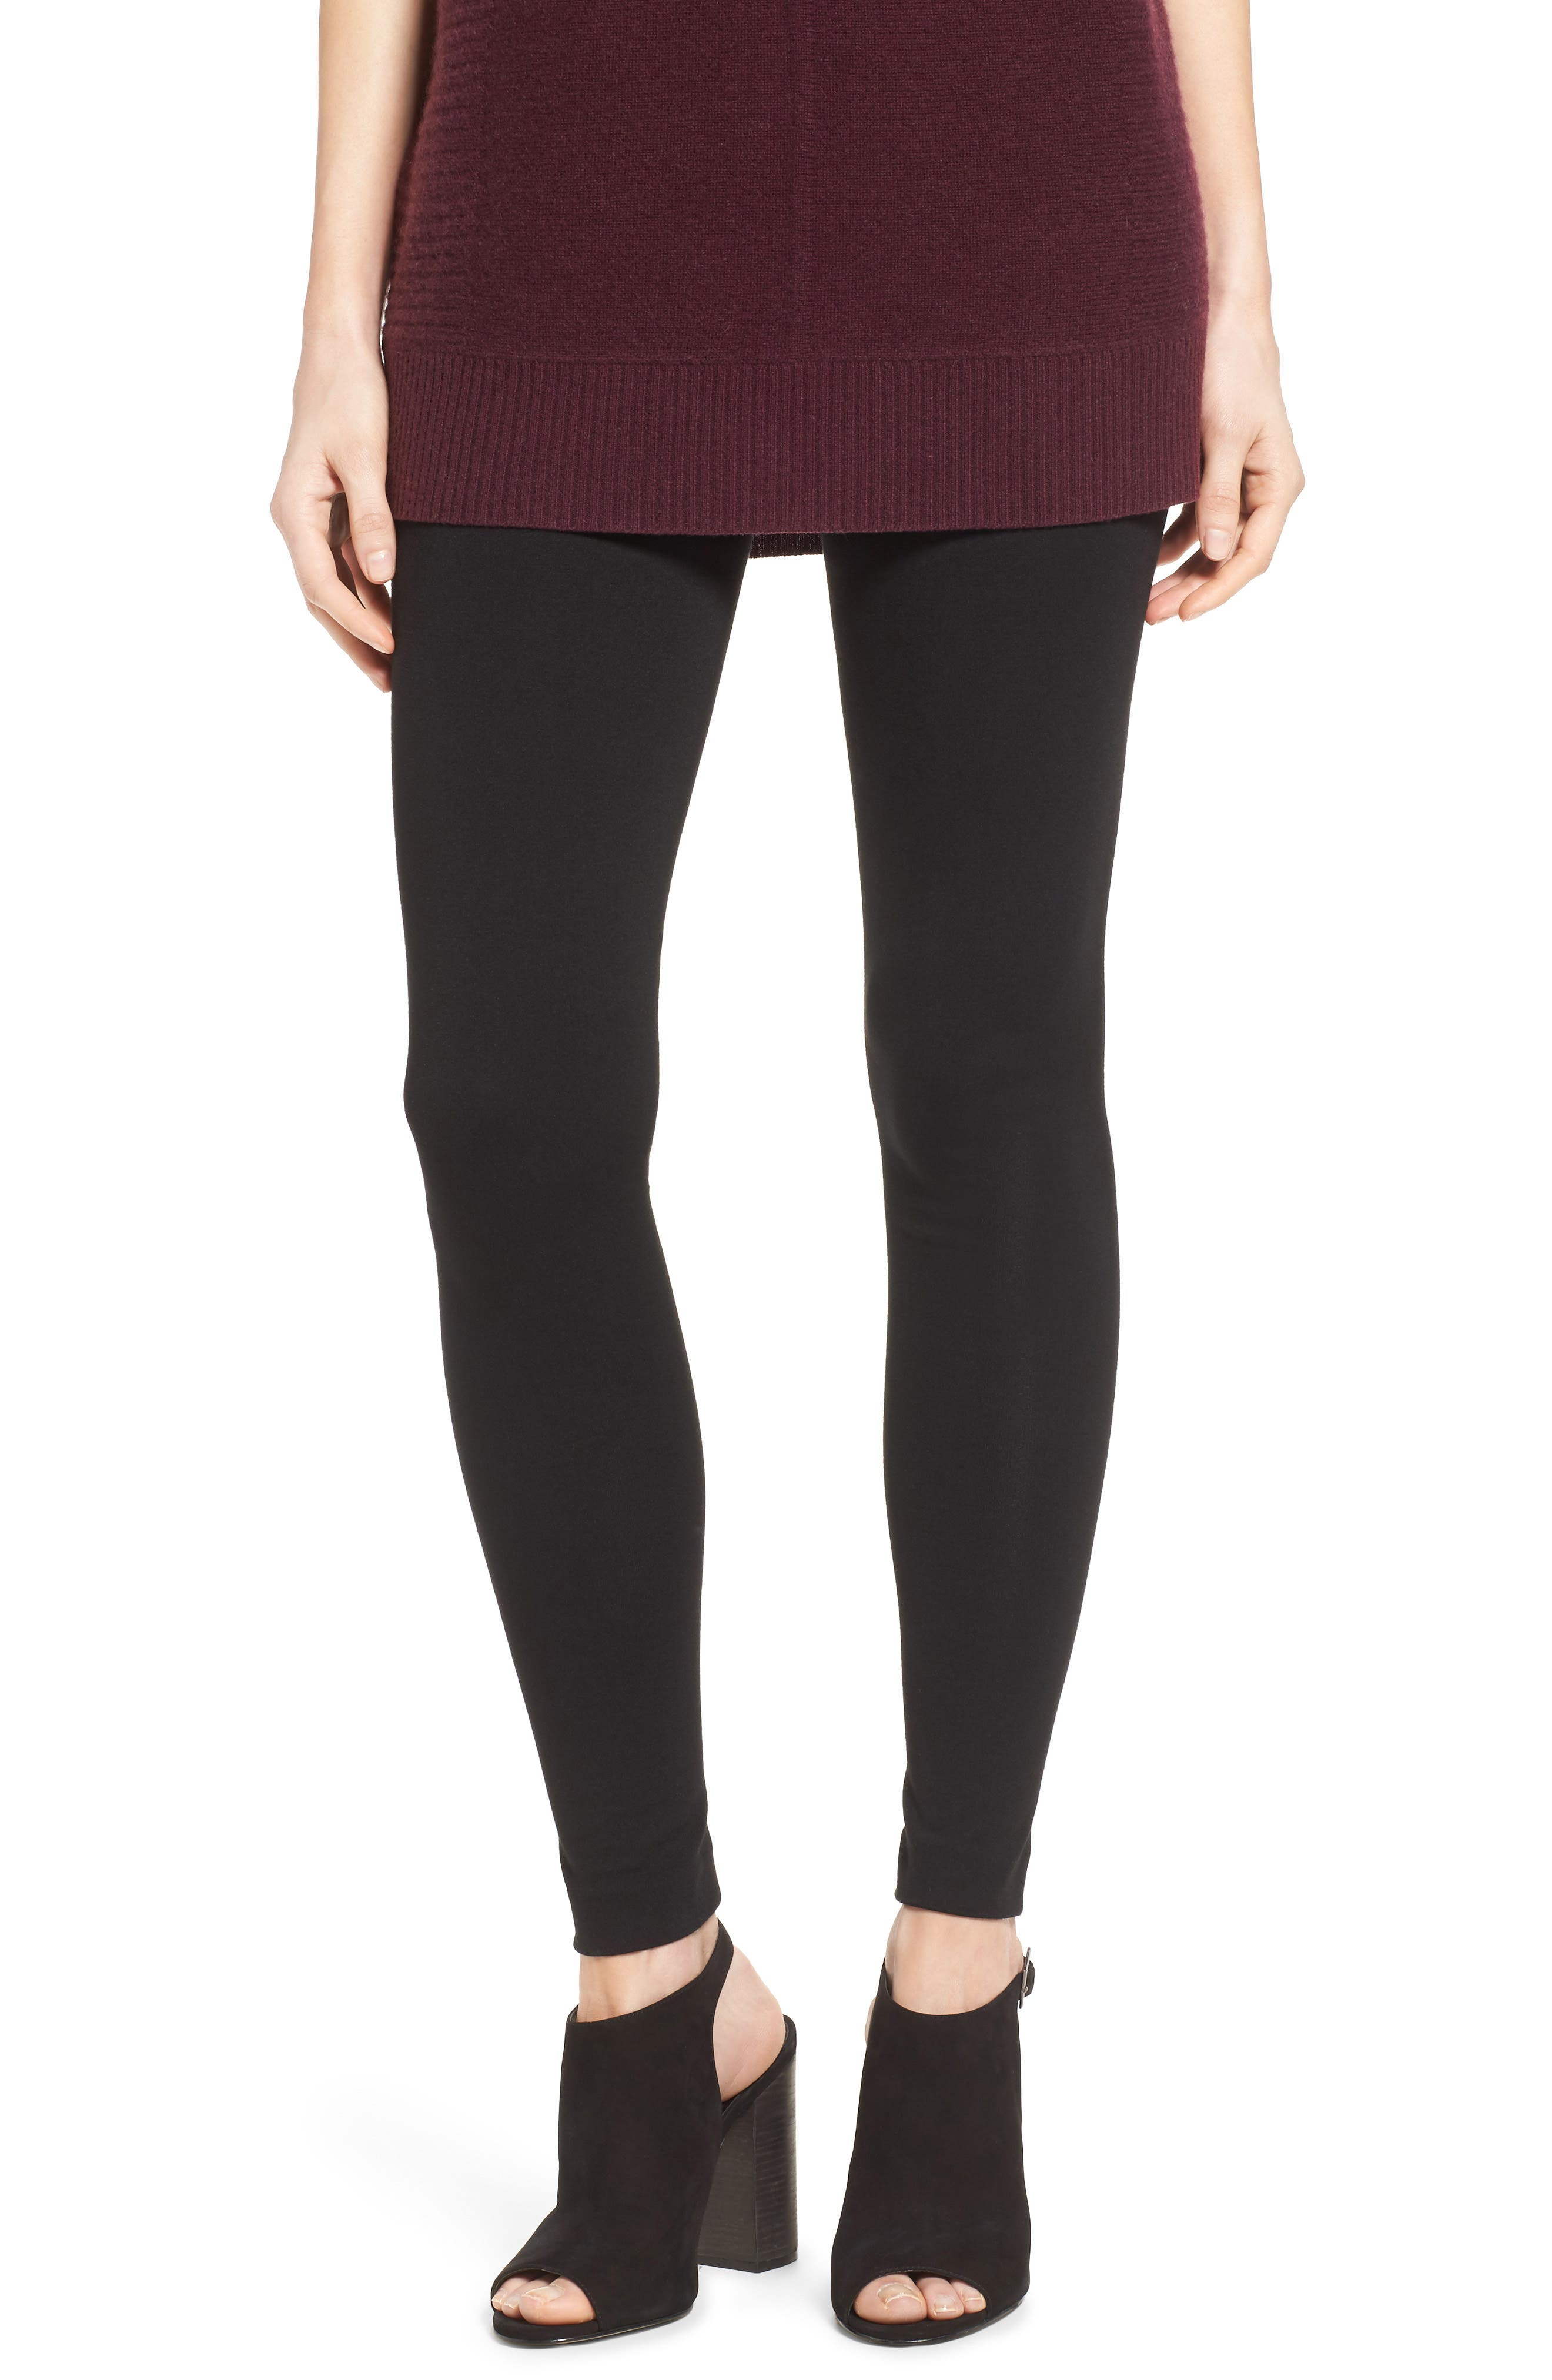 TWO BY VINCE CAMUTO SEAMED BACK LEGGINGS